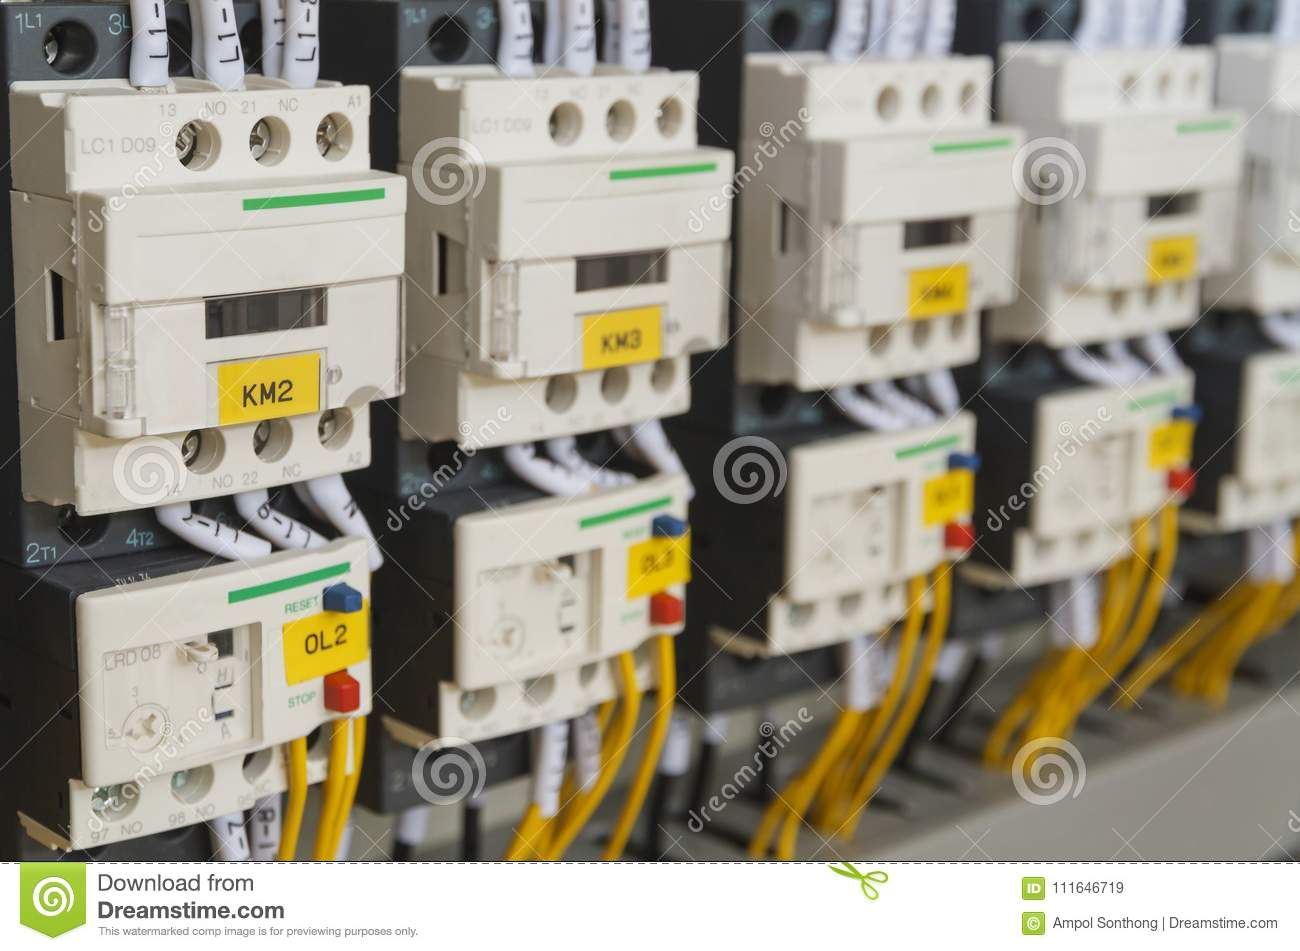 close up electrical wiring fuses contactors control panel box automatic machine 111646719 close up electrical wiring with fuses and contactors stock image